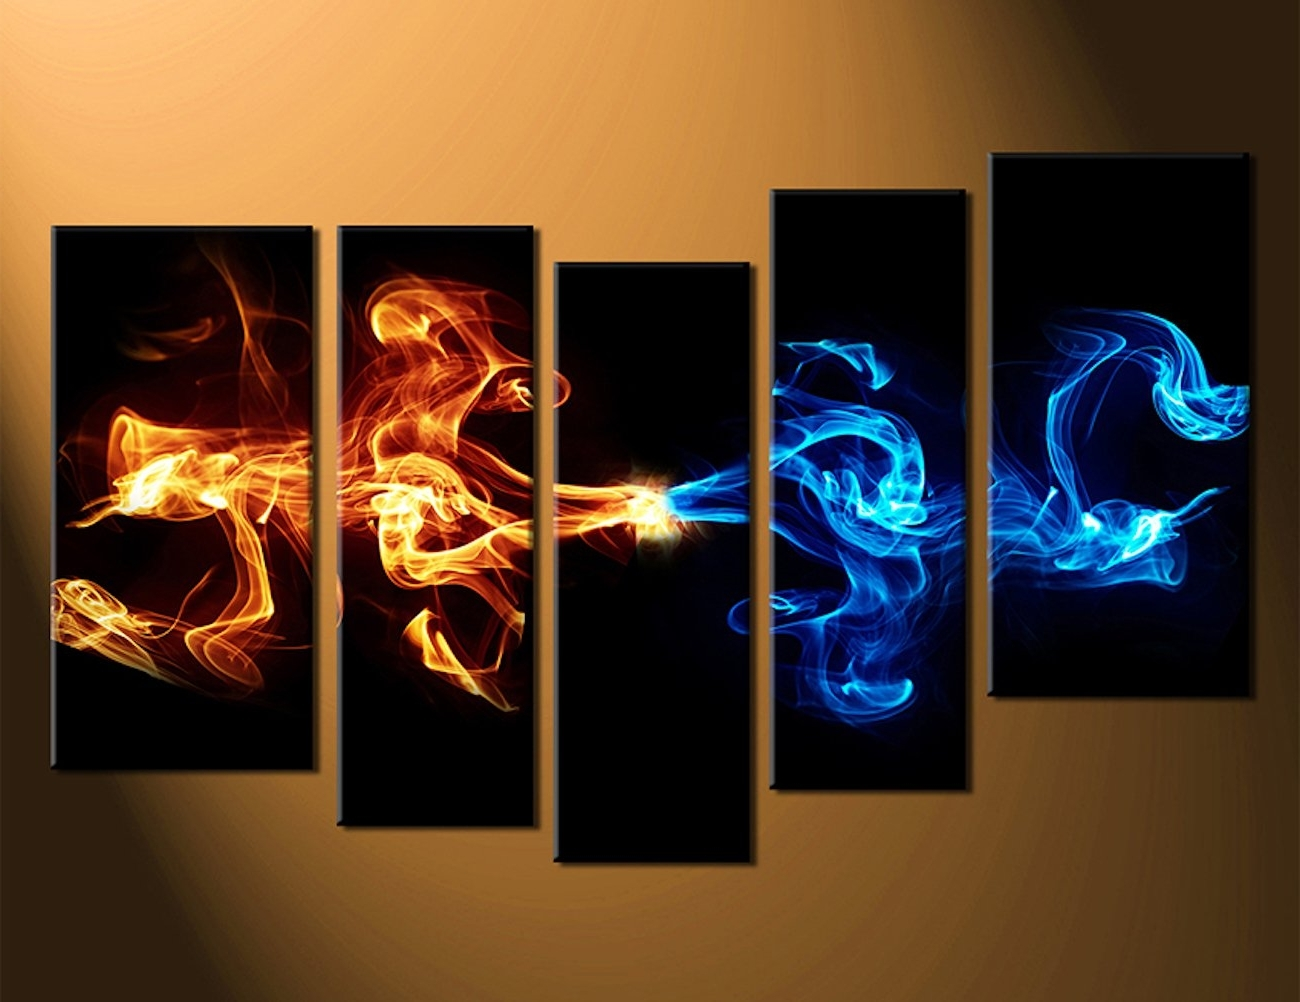 Most Current Abstract 5 Piece Smoke Canvas Wall Art » Gadget Flow Throughout Wall Art Canvas (View 4 of 15)